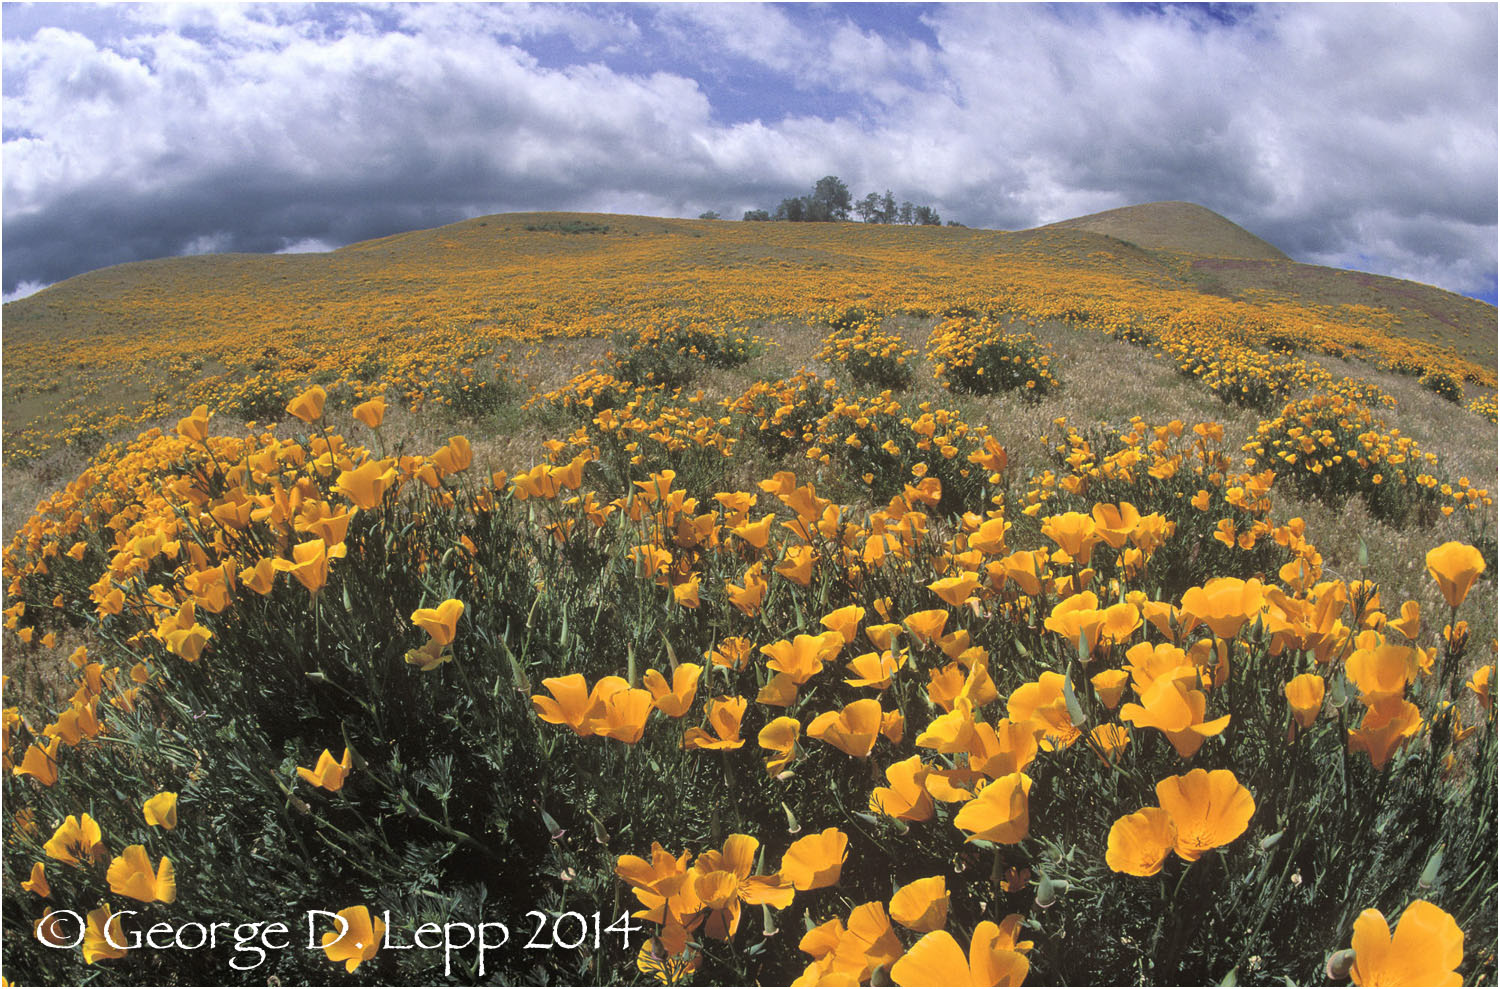 California Poppy.     © George D. Lepp 2014  PW-PO-0023